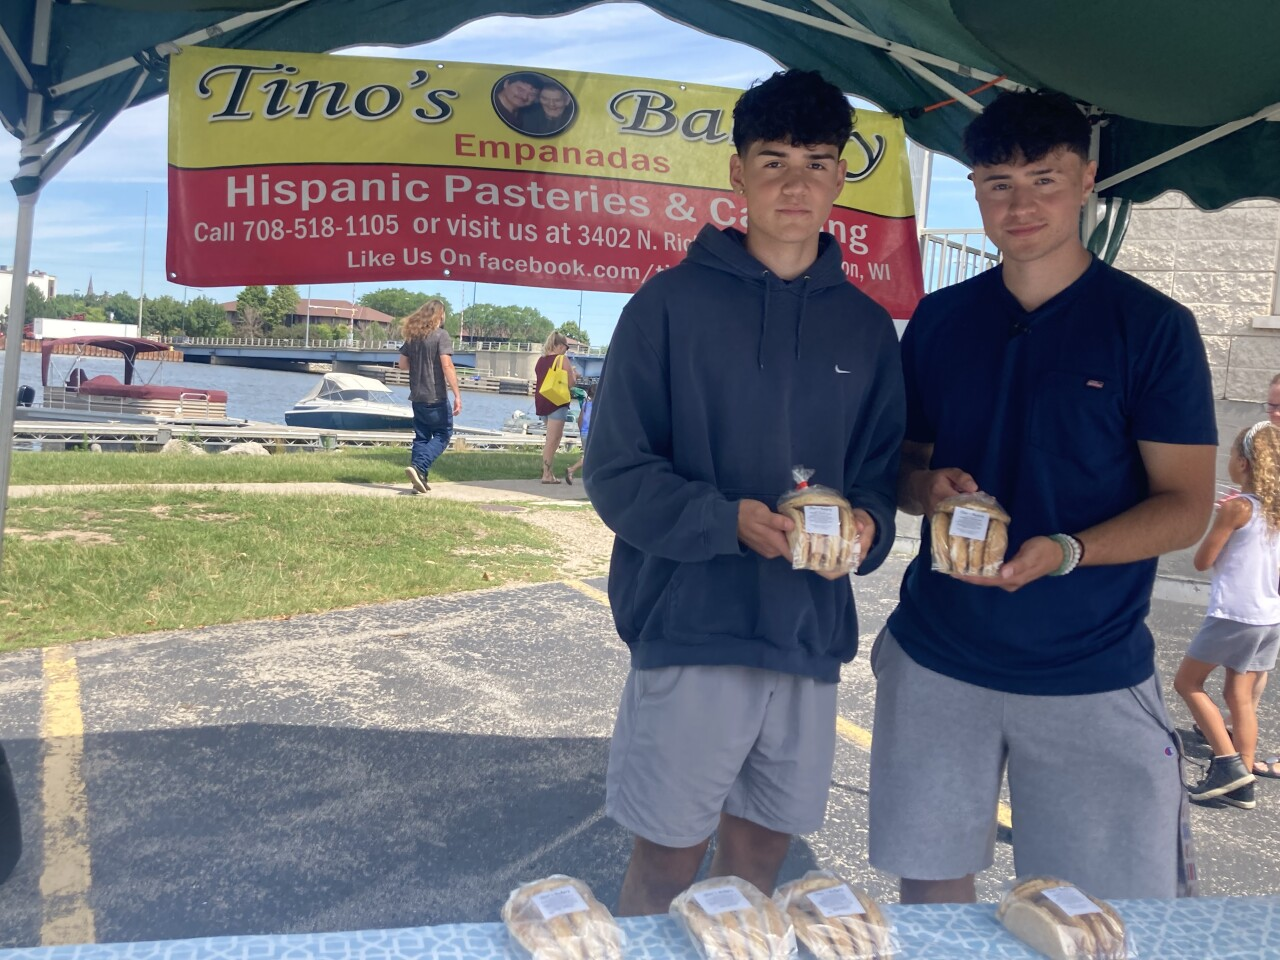 'A sweet taste of authenticity': Tino's Bakery returns to farmers markets across Northeast Wisconsin